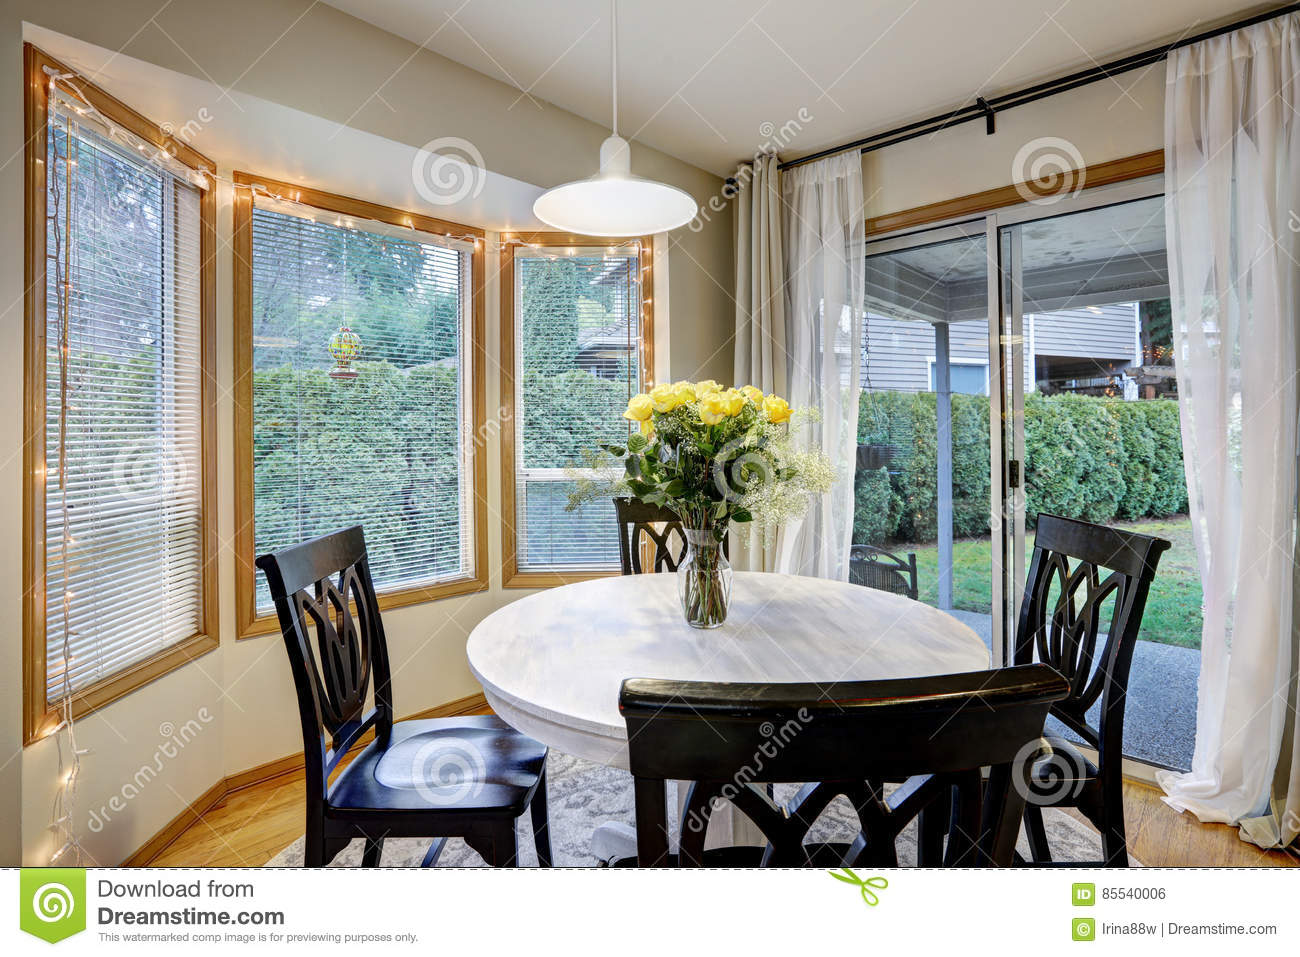 Dining Room With Curved Window Wall And Glass Sliding Doors Leading Out To Deck Yard Round White Washed Table Lined Black Chairs Topped